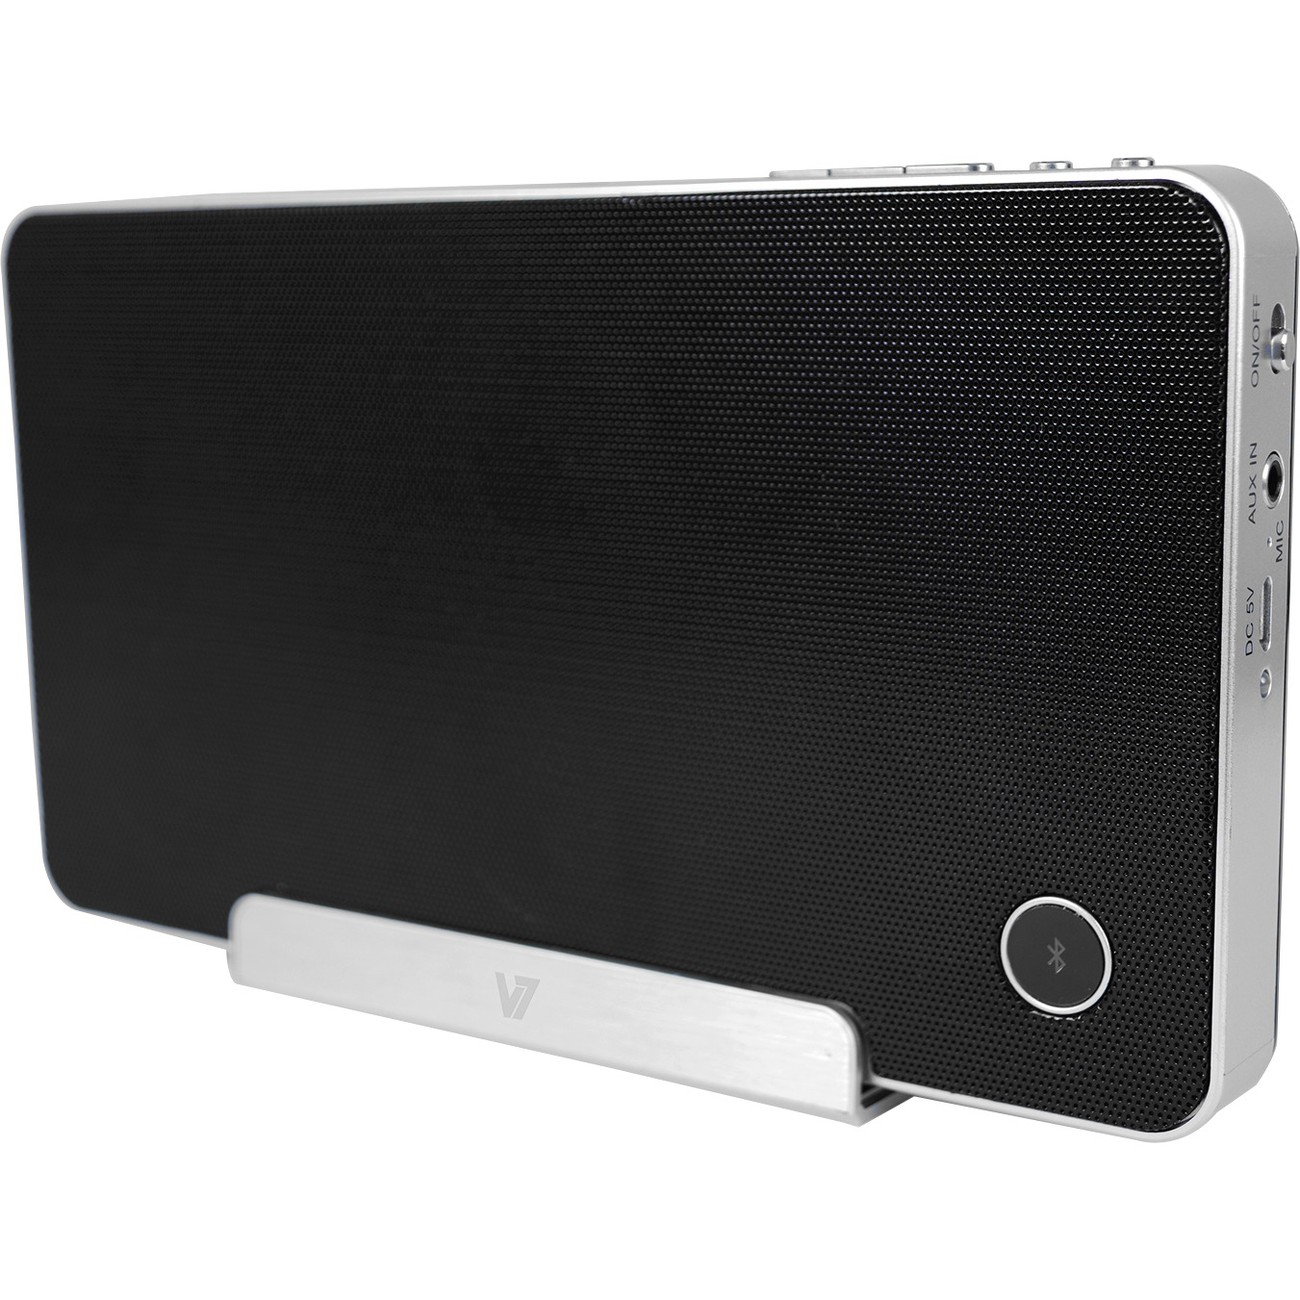 V7 Bluetooth Wireless Speaker with Built-in Microphone (Push to Talk) and Tablet Stand